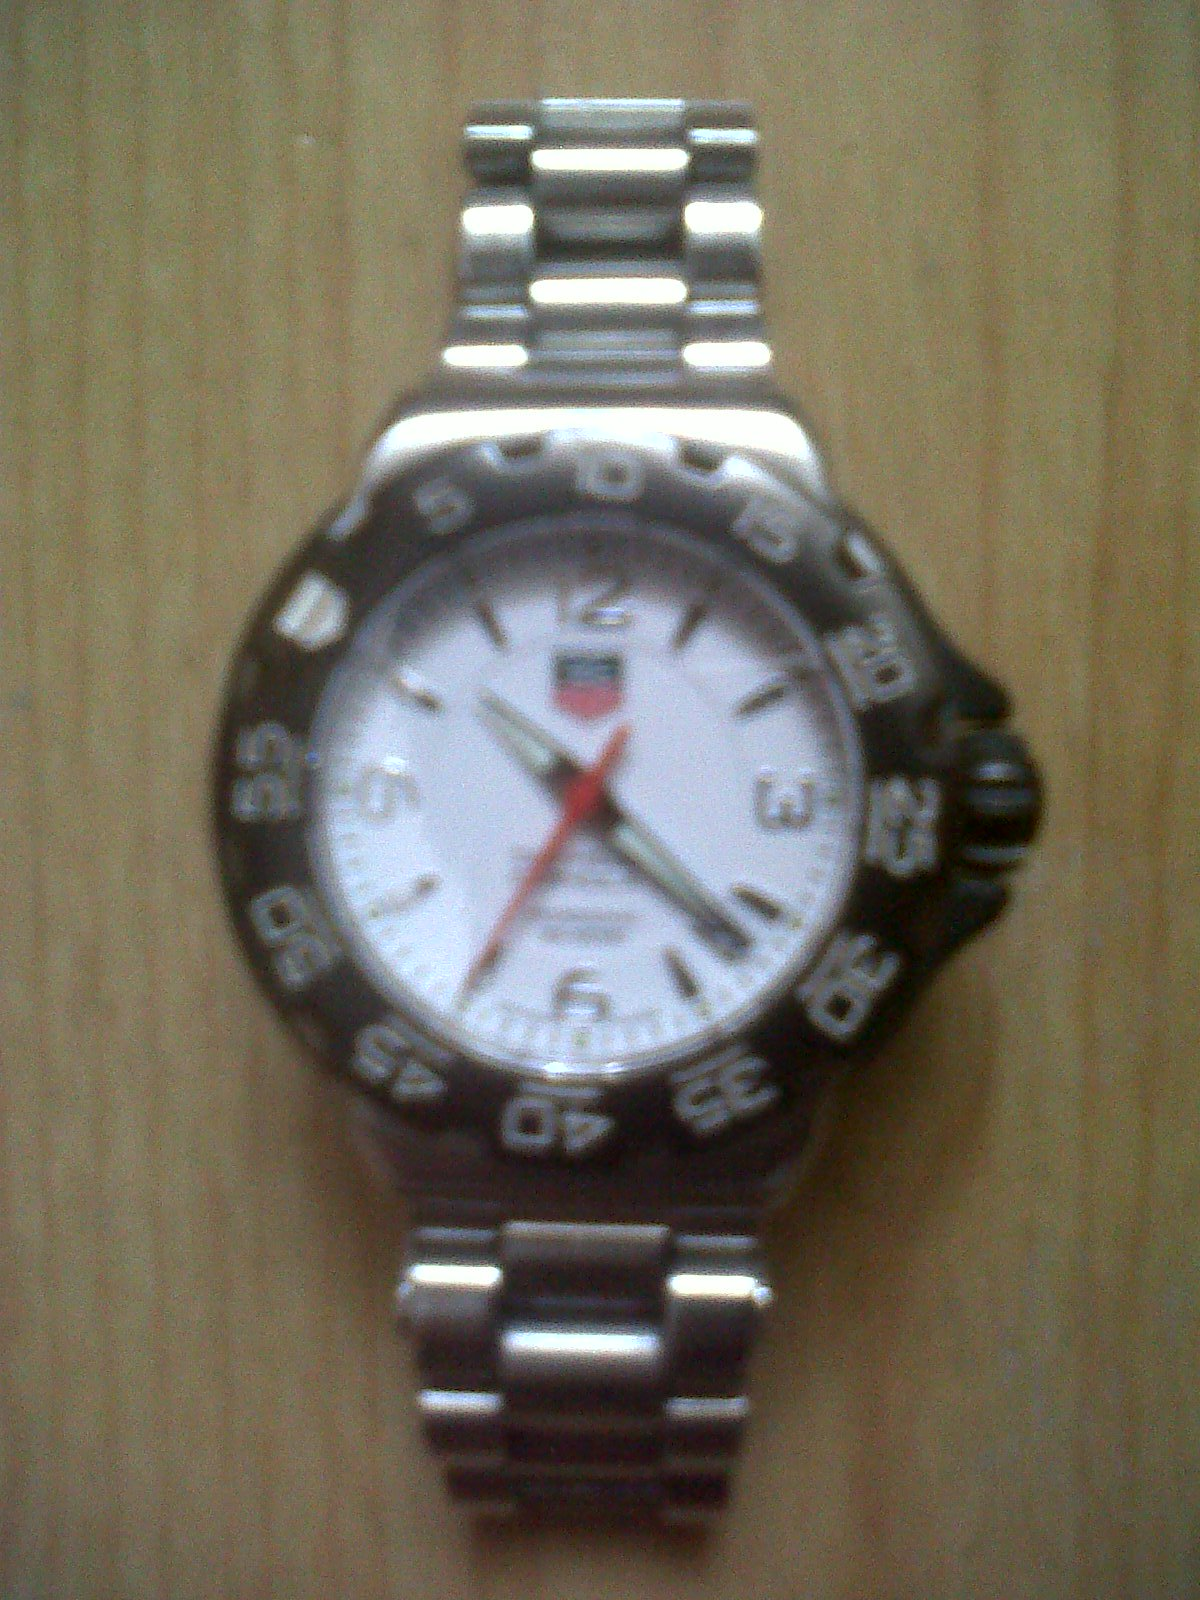 FOR SALE: Authentic Tag Heuer Formula 1 F1 Professional 200M Ladies Watch